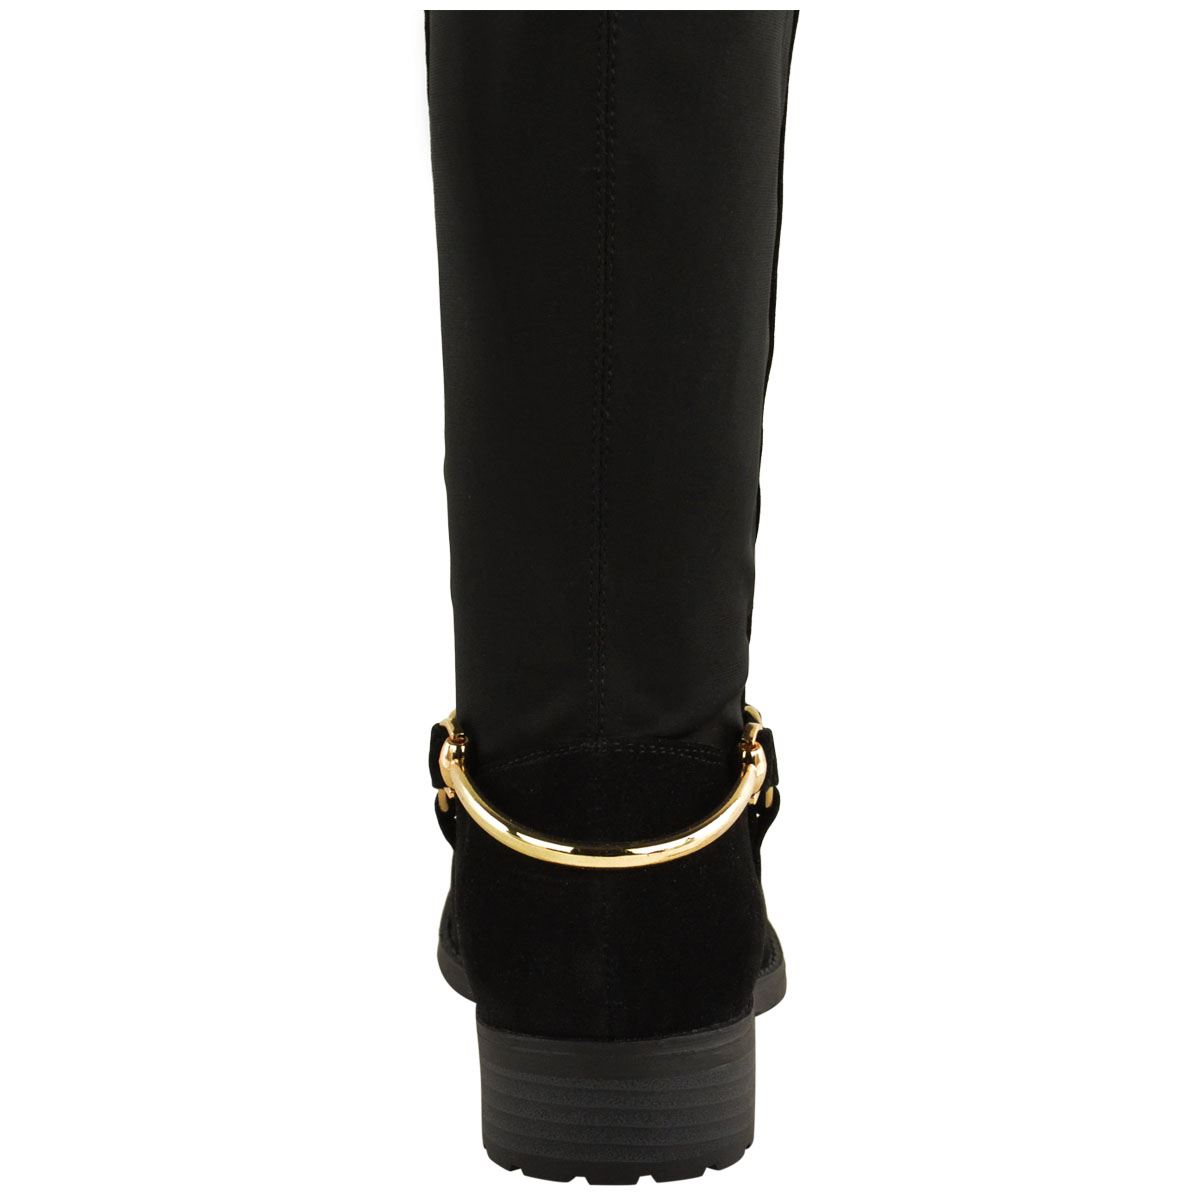 WOMENS LADIES OVER THE KNEE THIGH HIGH STRETCH PULL ON LOW FLAT HEEL BOOTS SHOES